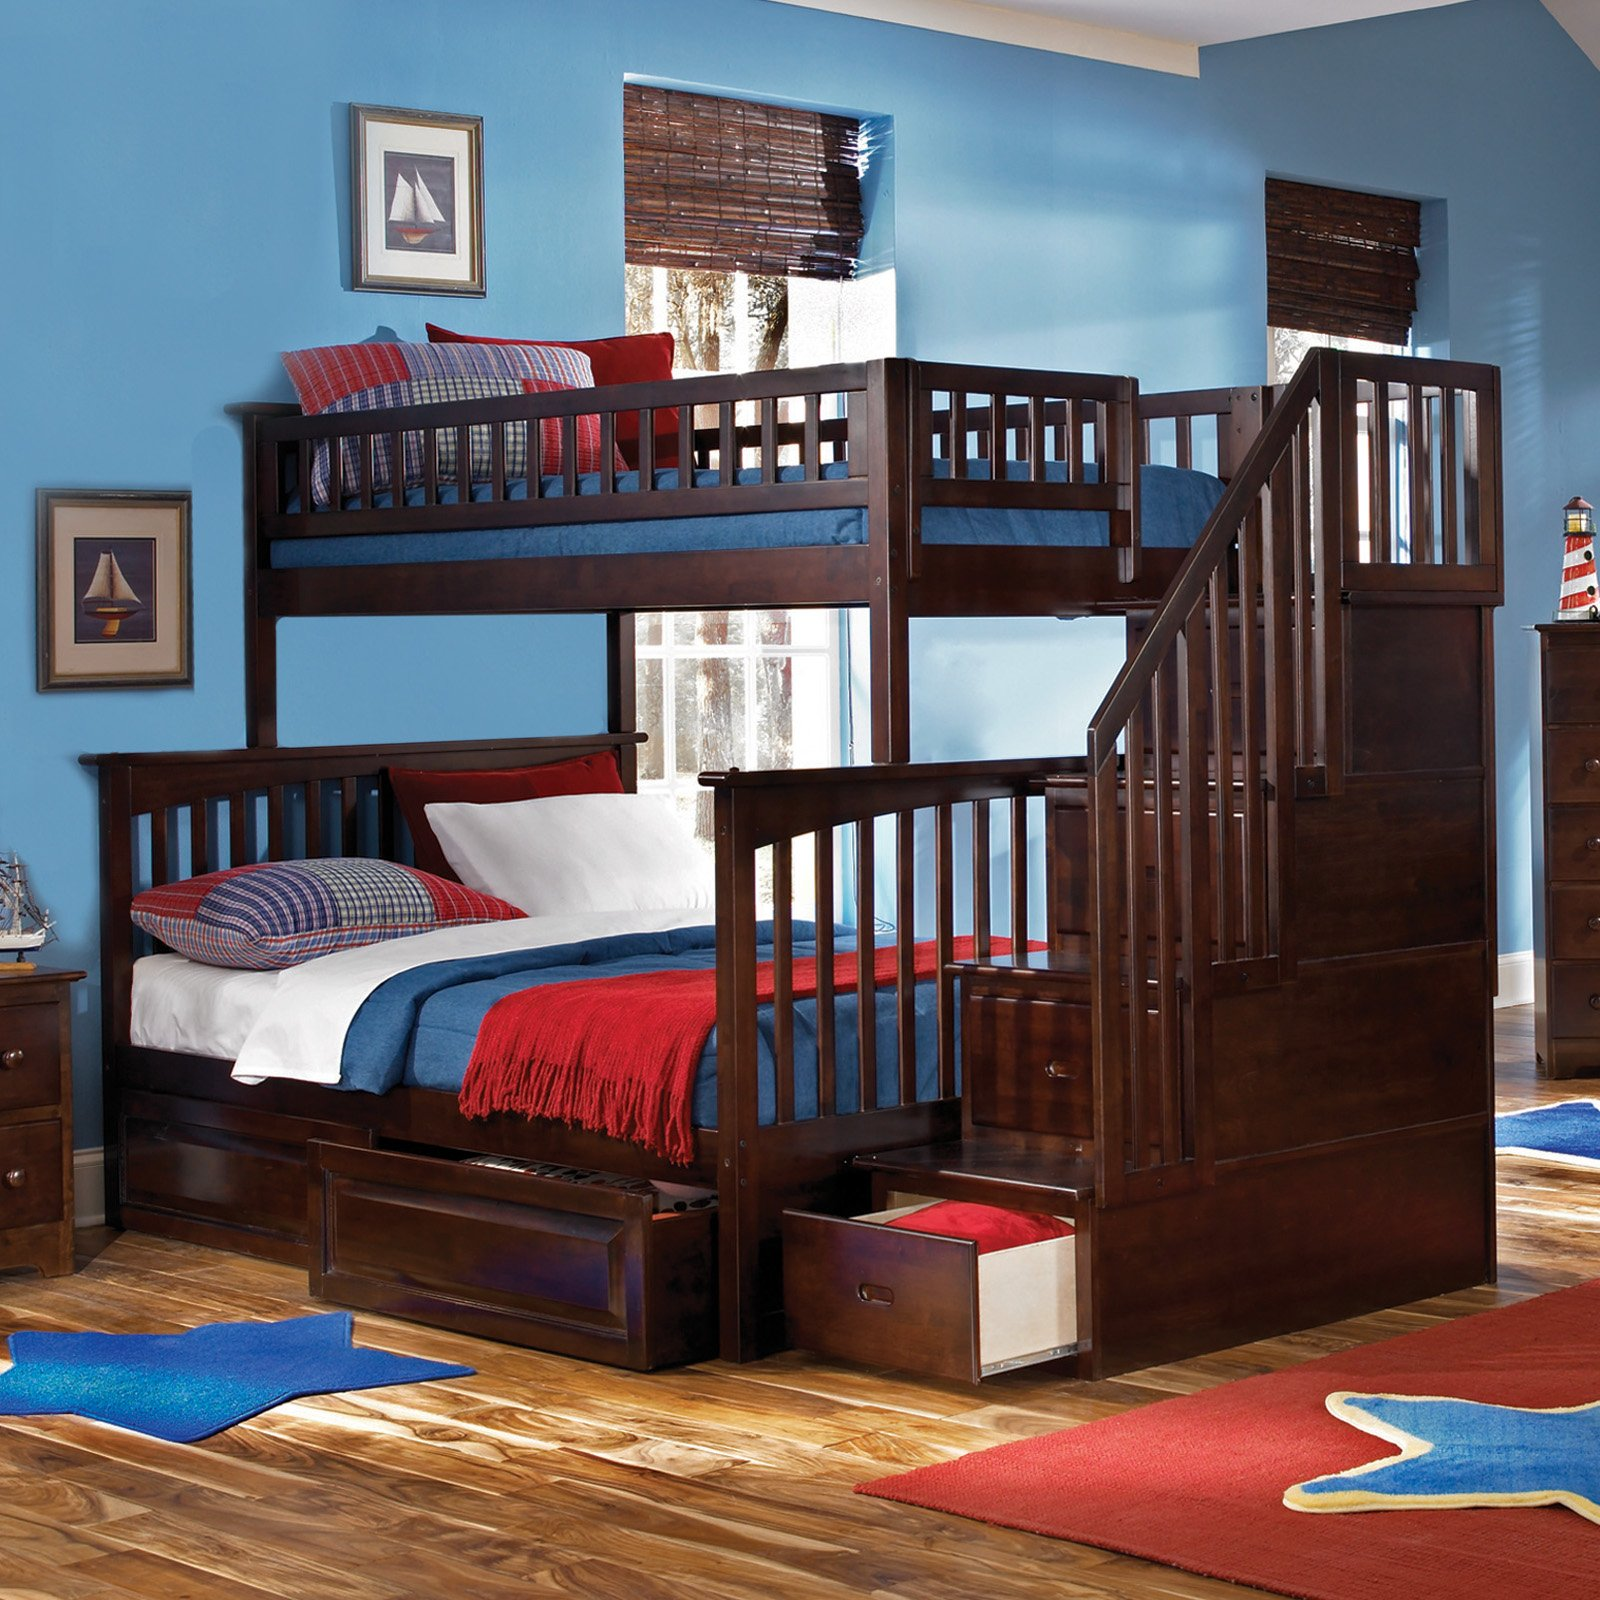 cozy wood Bunk Beds With Stairs in dark brown with drawers on wooden floor with chic rug matched with blue wall with picture for boy bedroom decor ideas